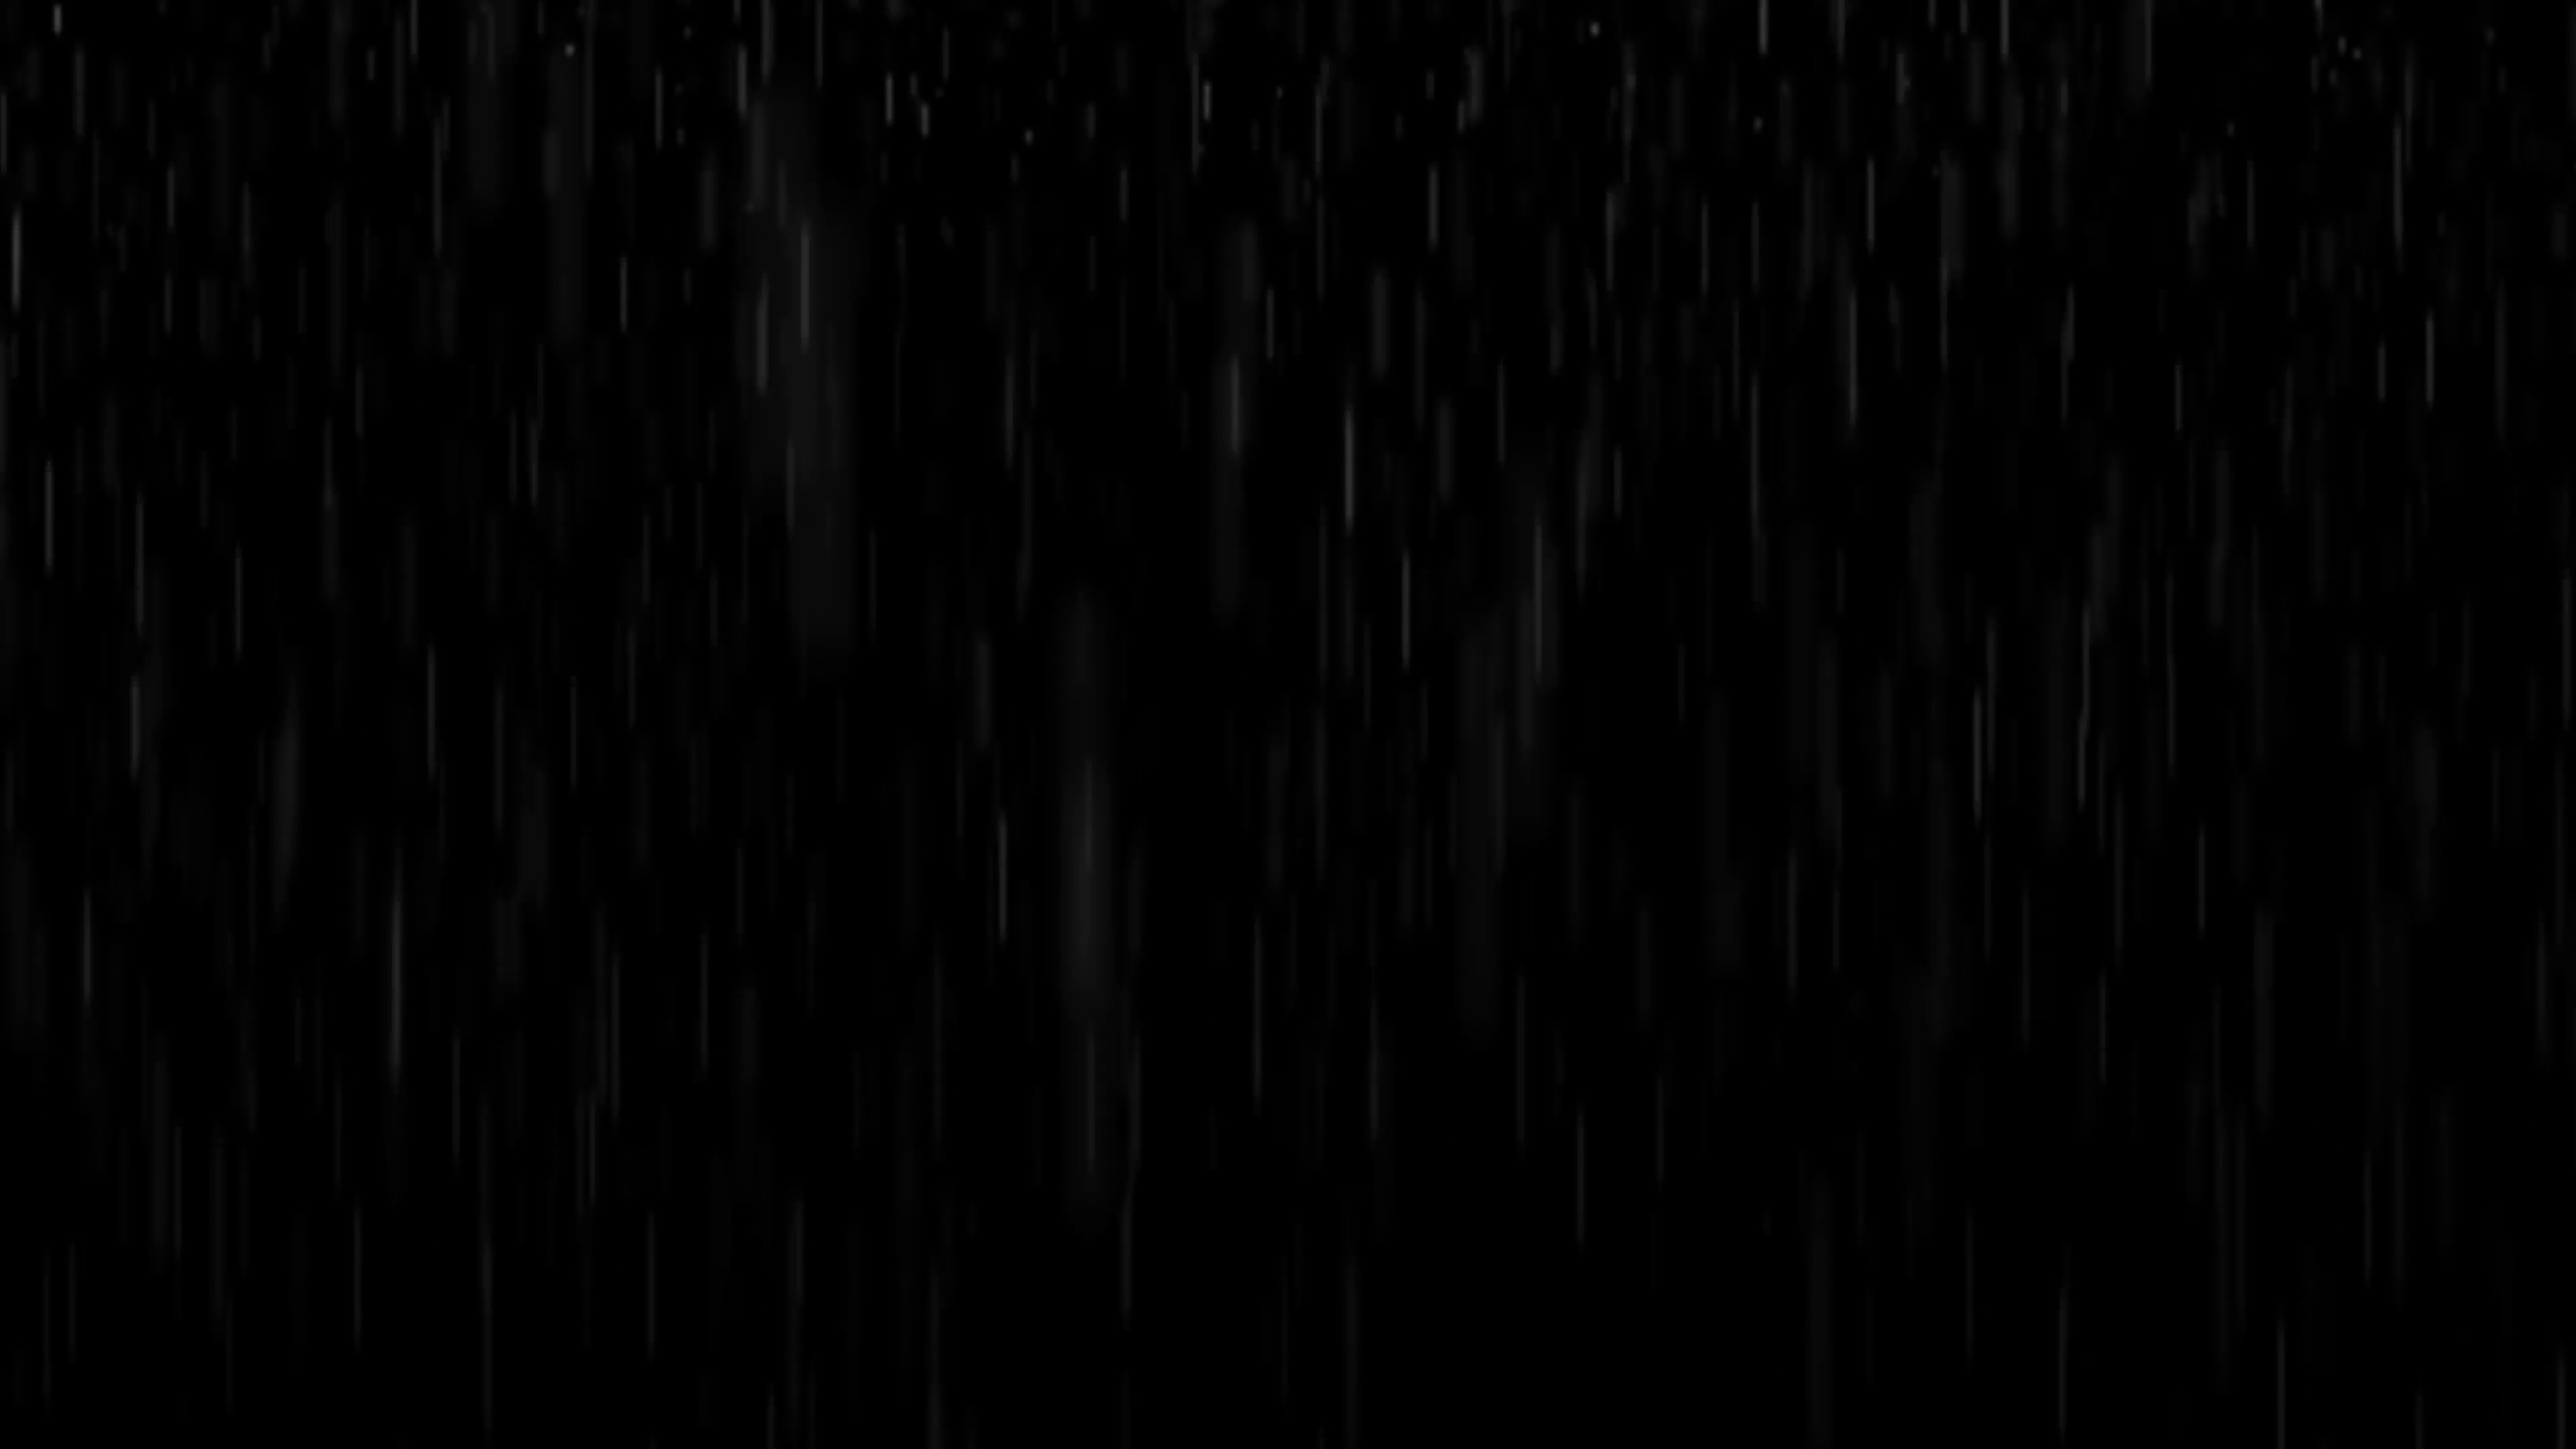 Rain Overlay Png (94+ images).